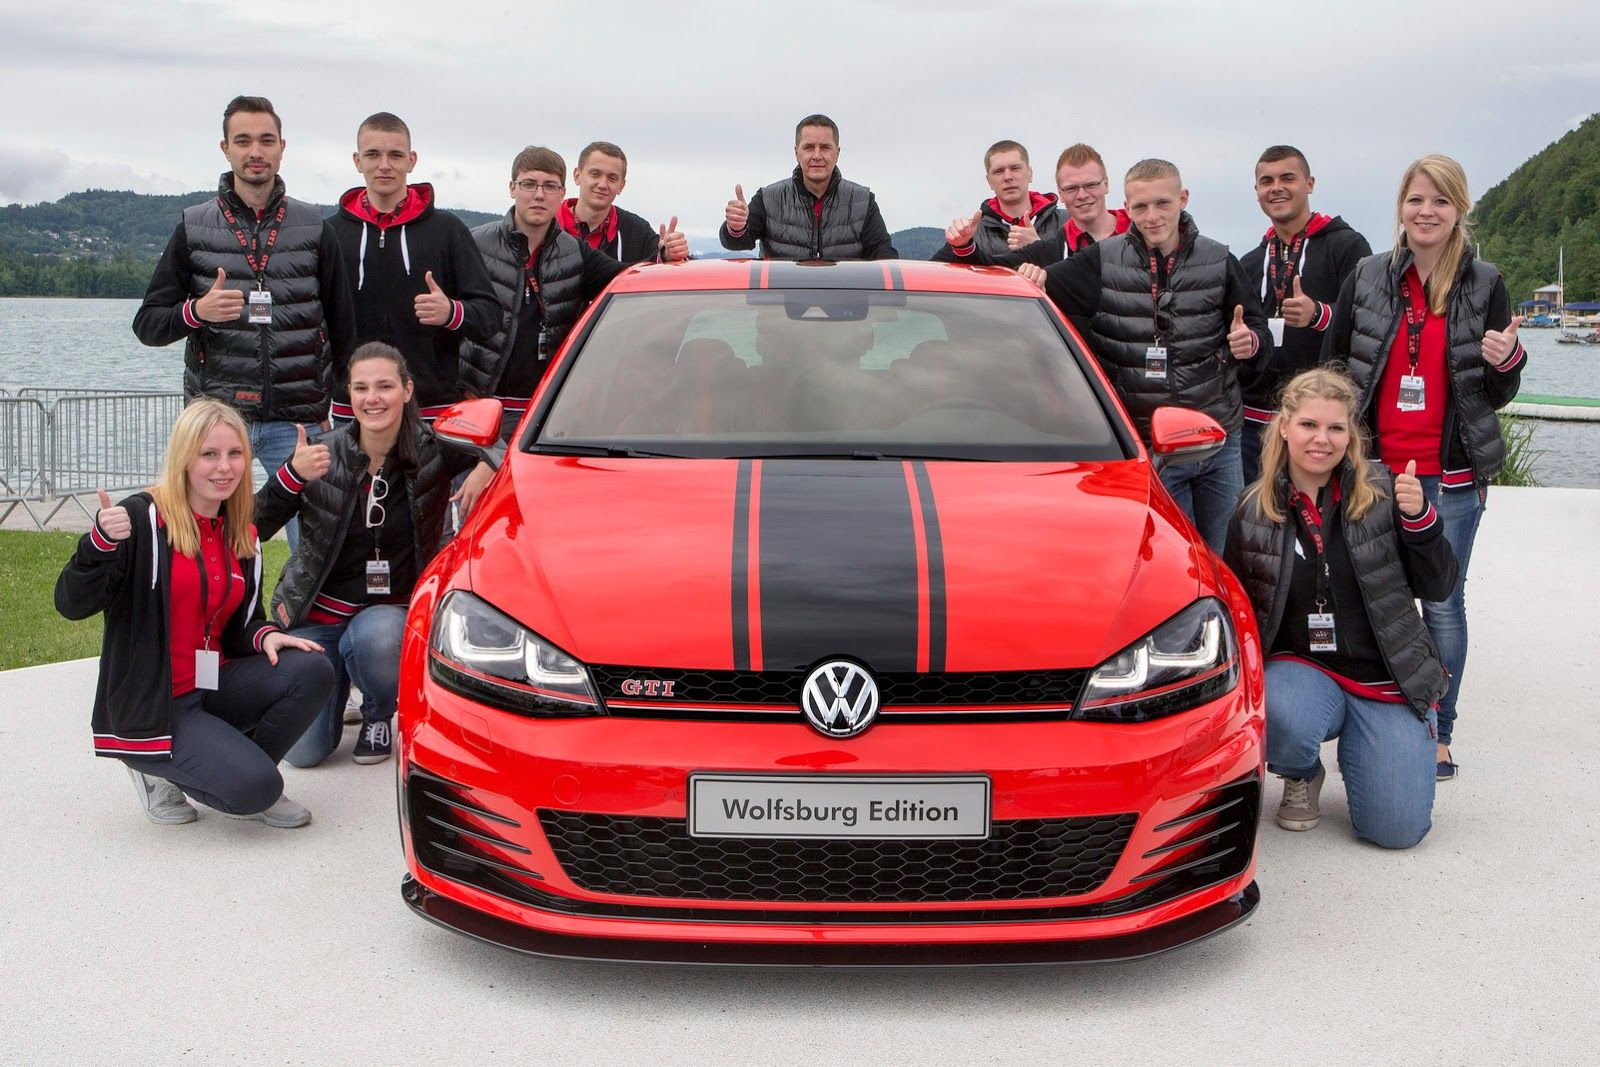 Vw Apprentices Unwrap 380ps Golf Gti Wolfsburg Edition At Worthersee Carscoops Volkswagen Polo Gti Volkswagen Golf Gti Polo Gti [ 1067 x 1600 Pixel ]